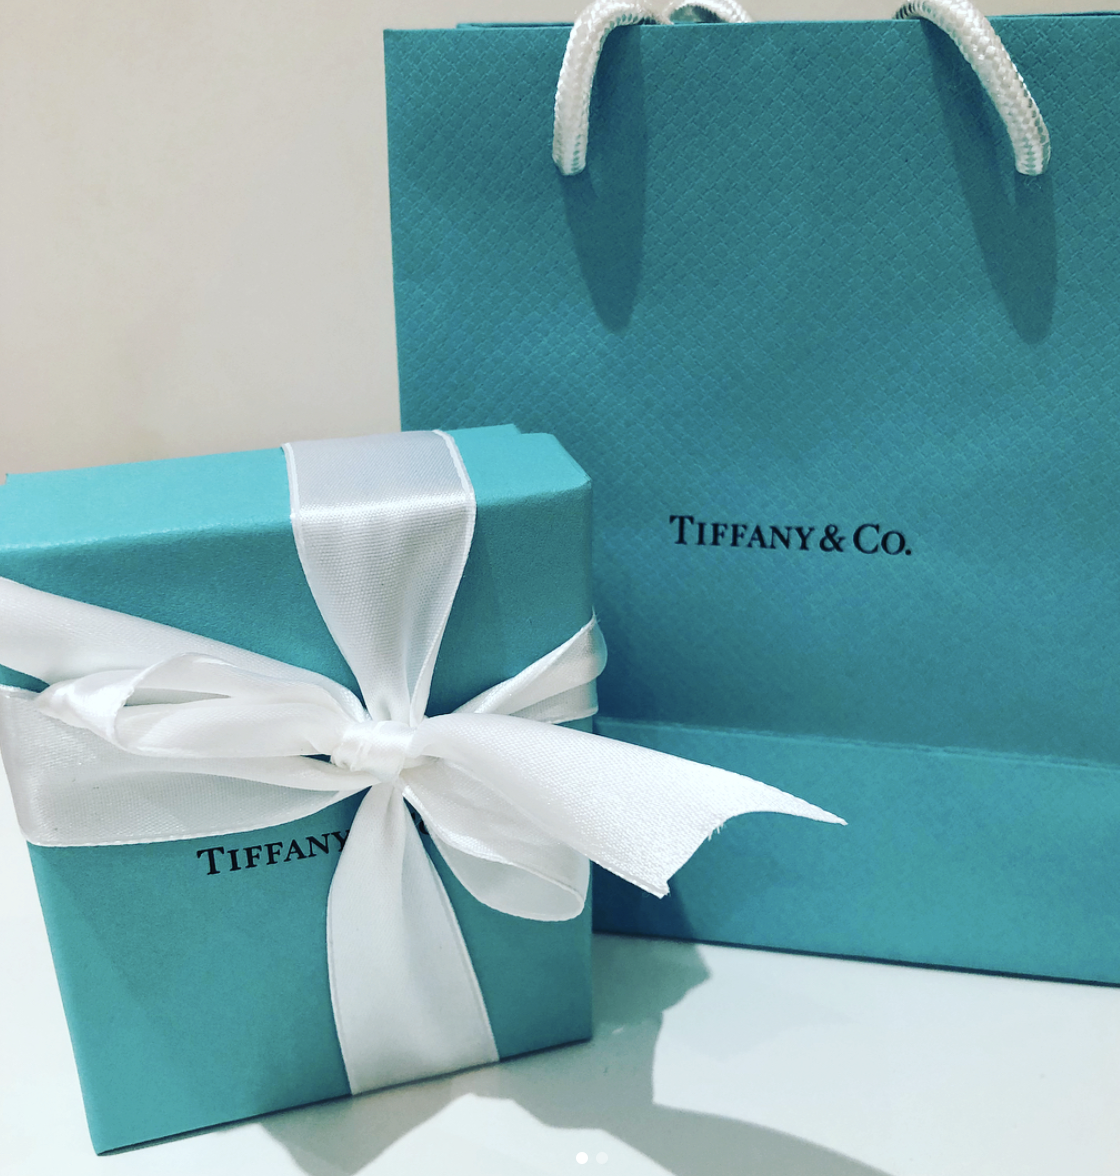 The Tiffany 'blue box'